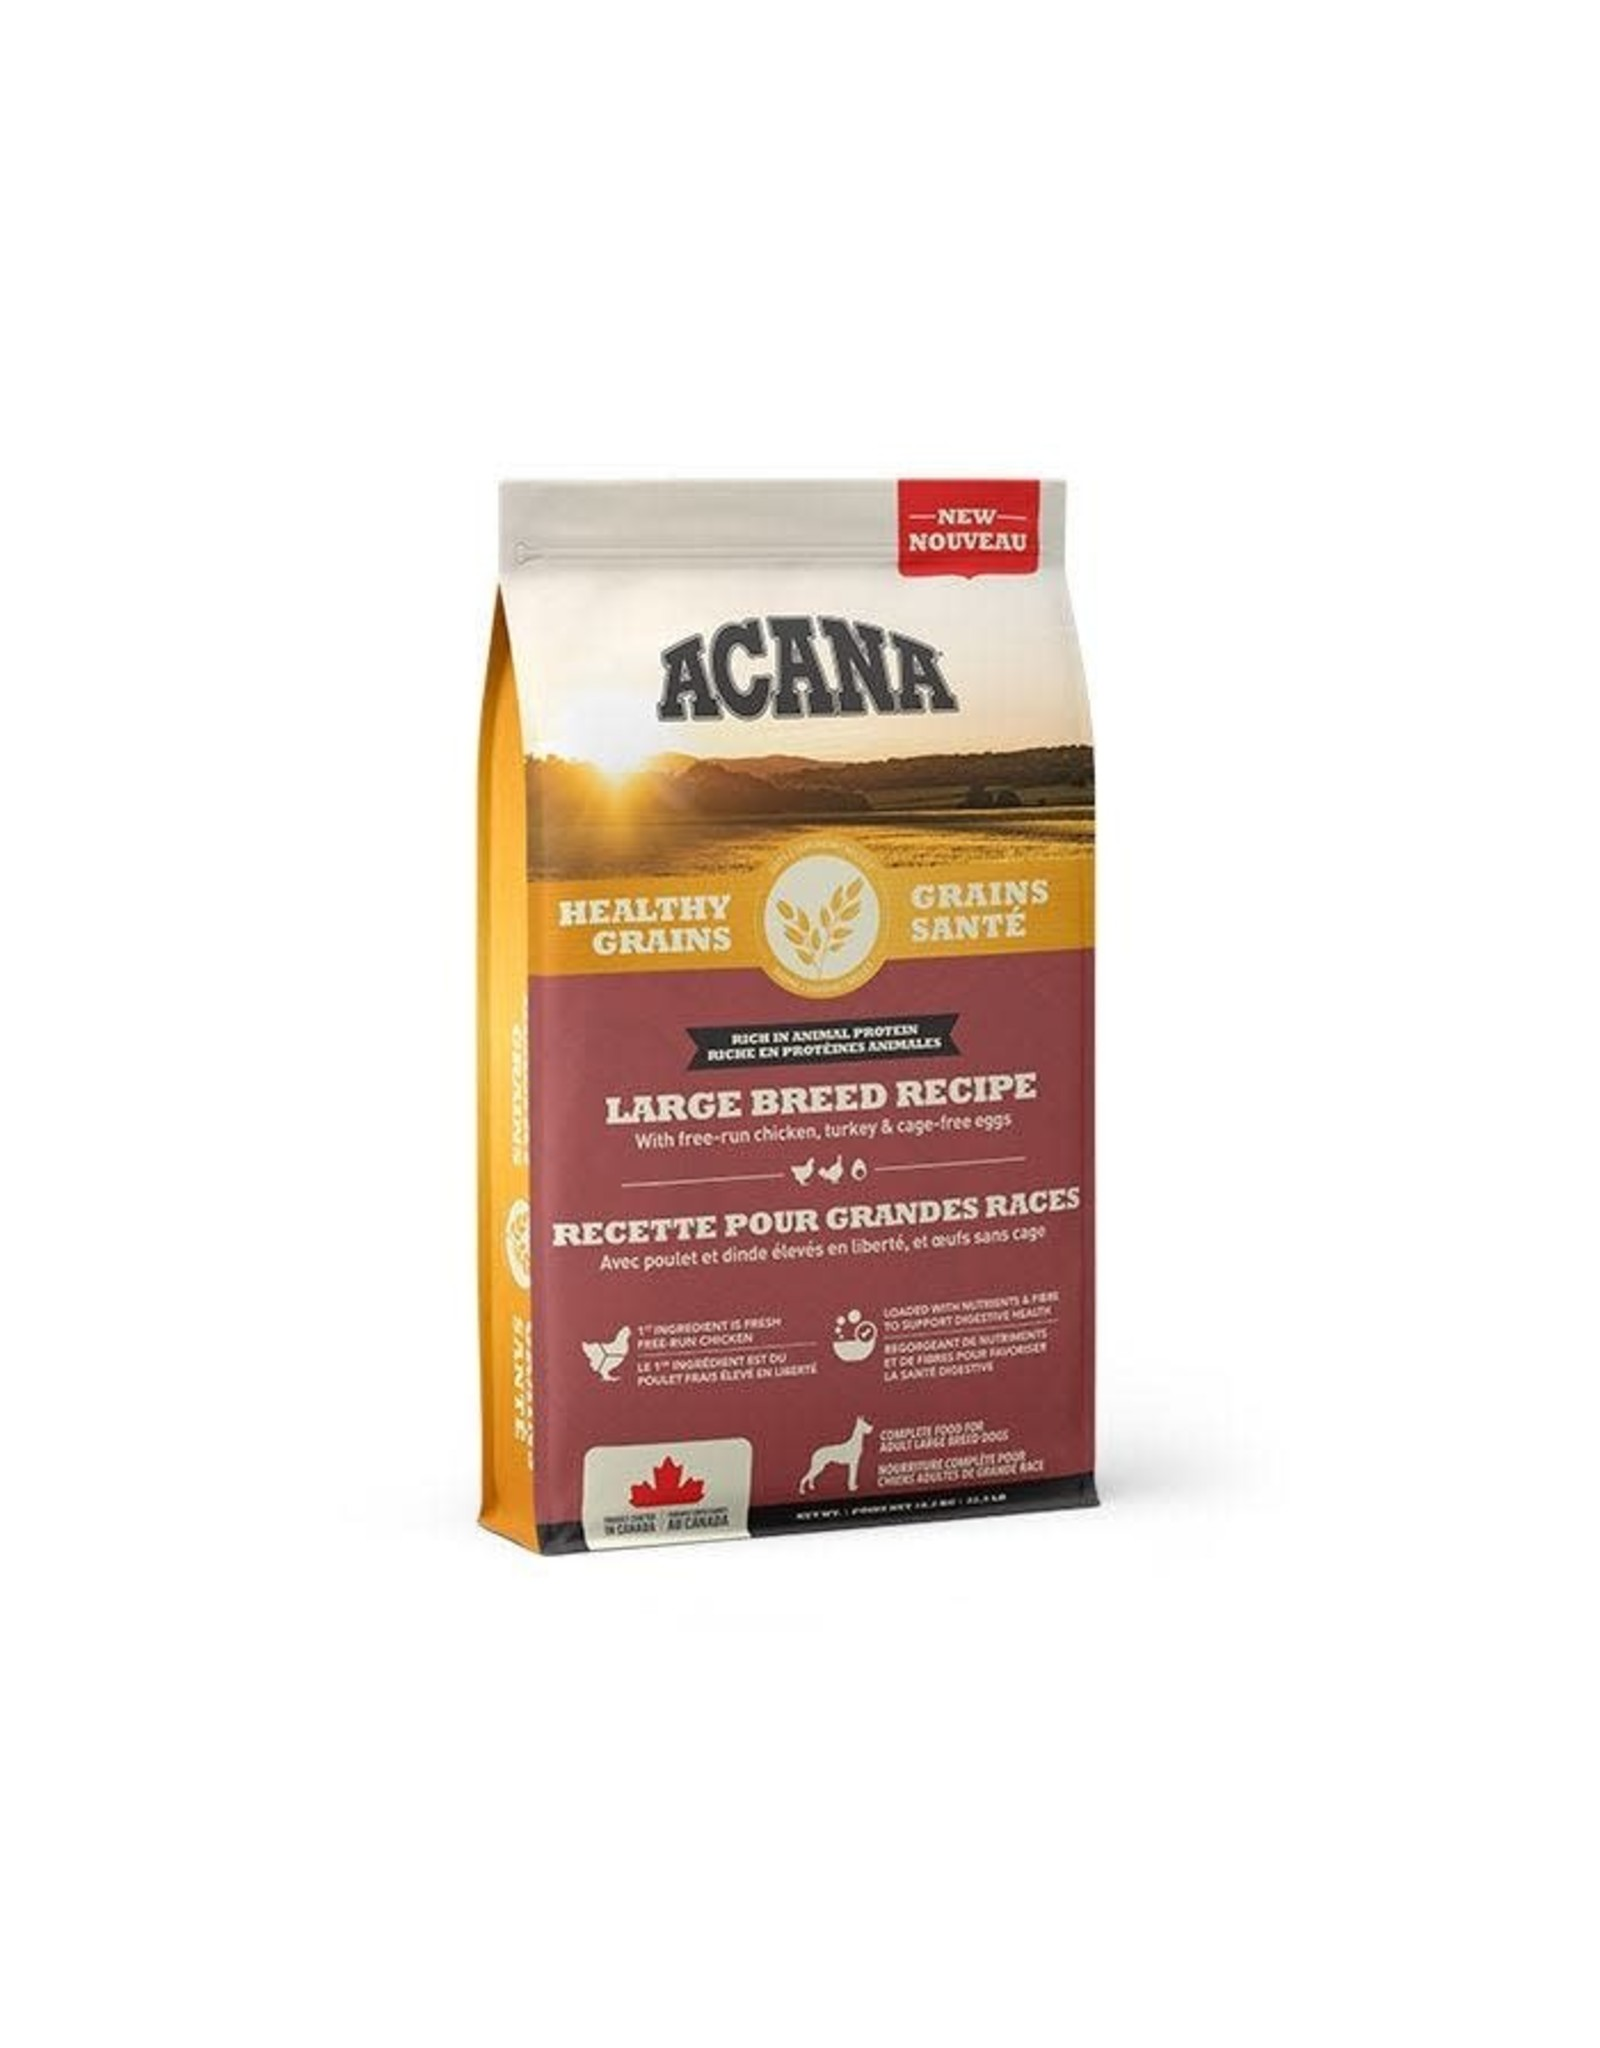 Acana Acana - Healthy Grains Large Breed 10.2 kg